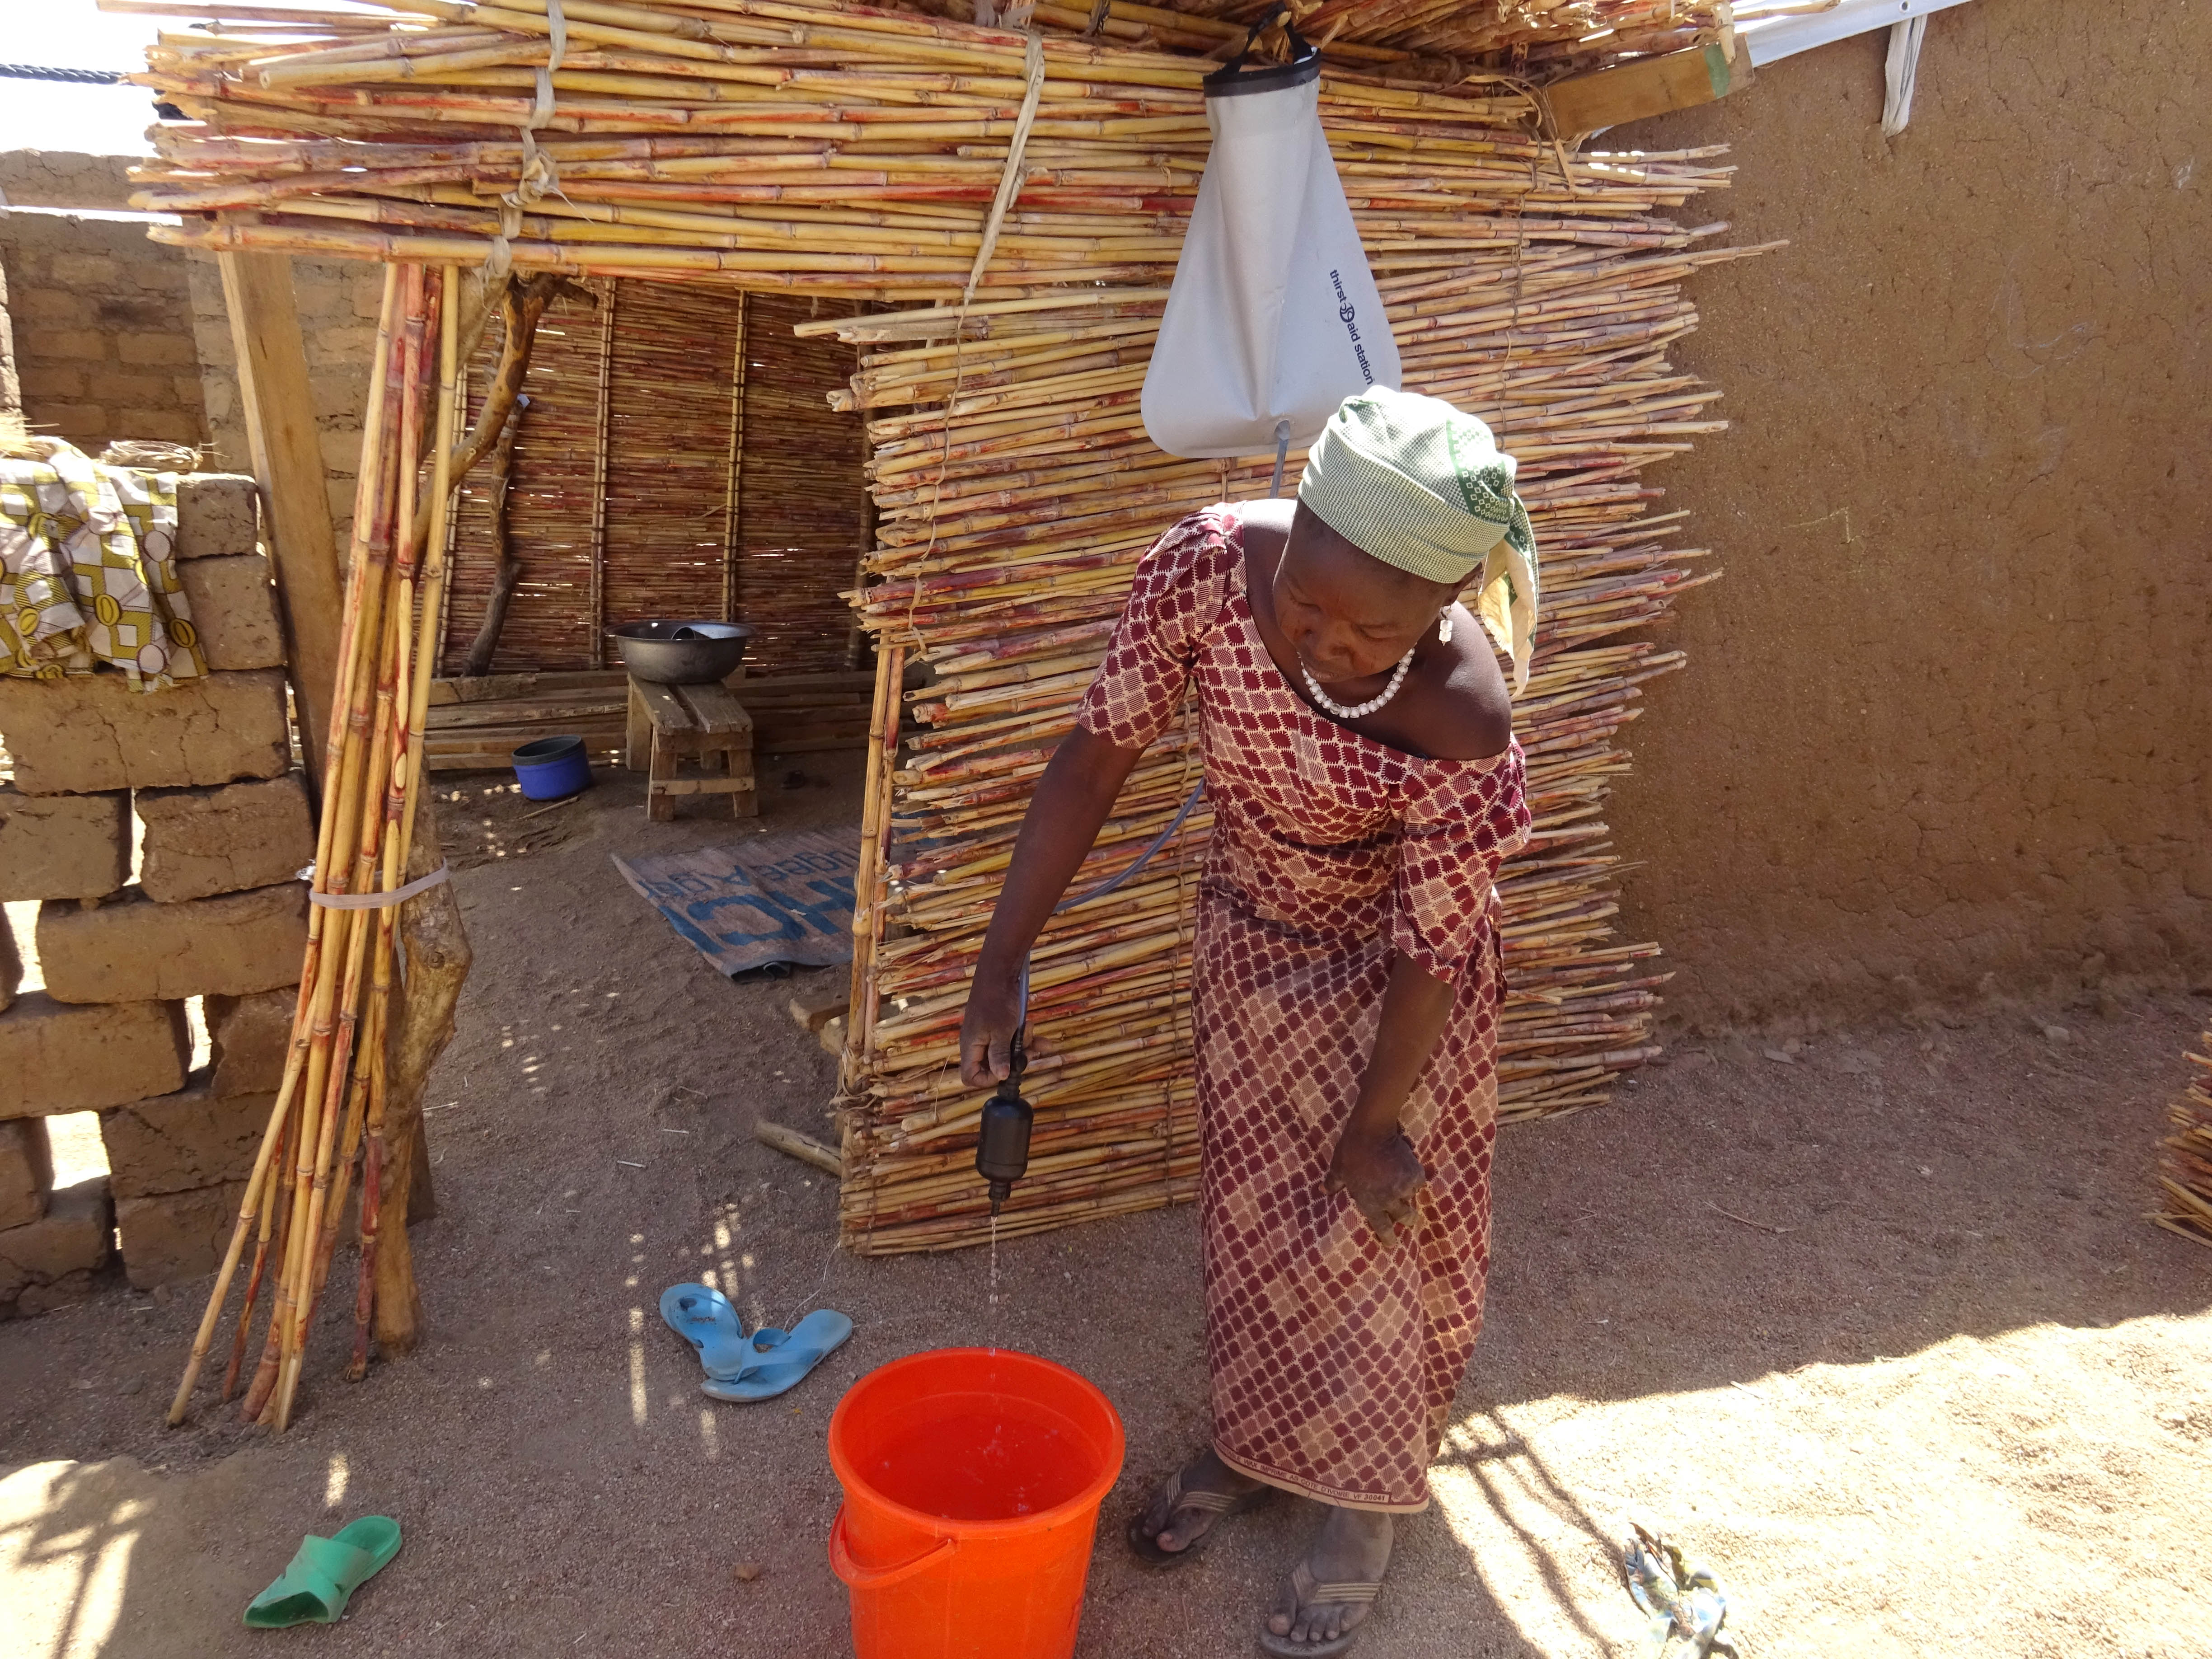 A woman filters water into a bucket